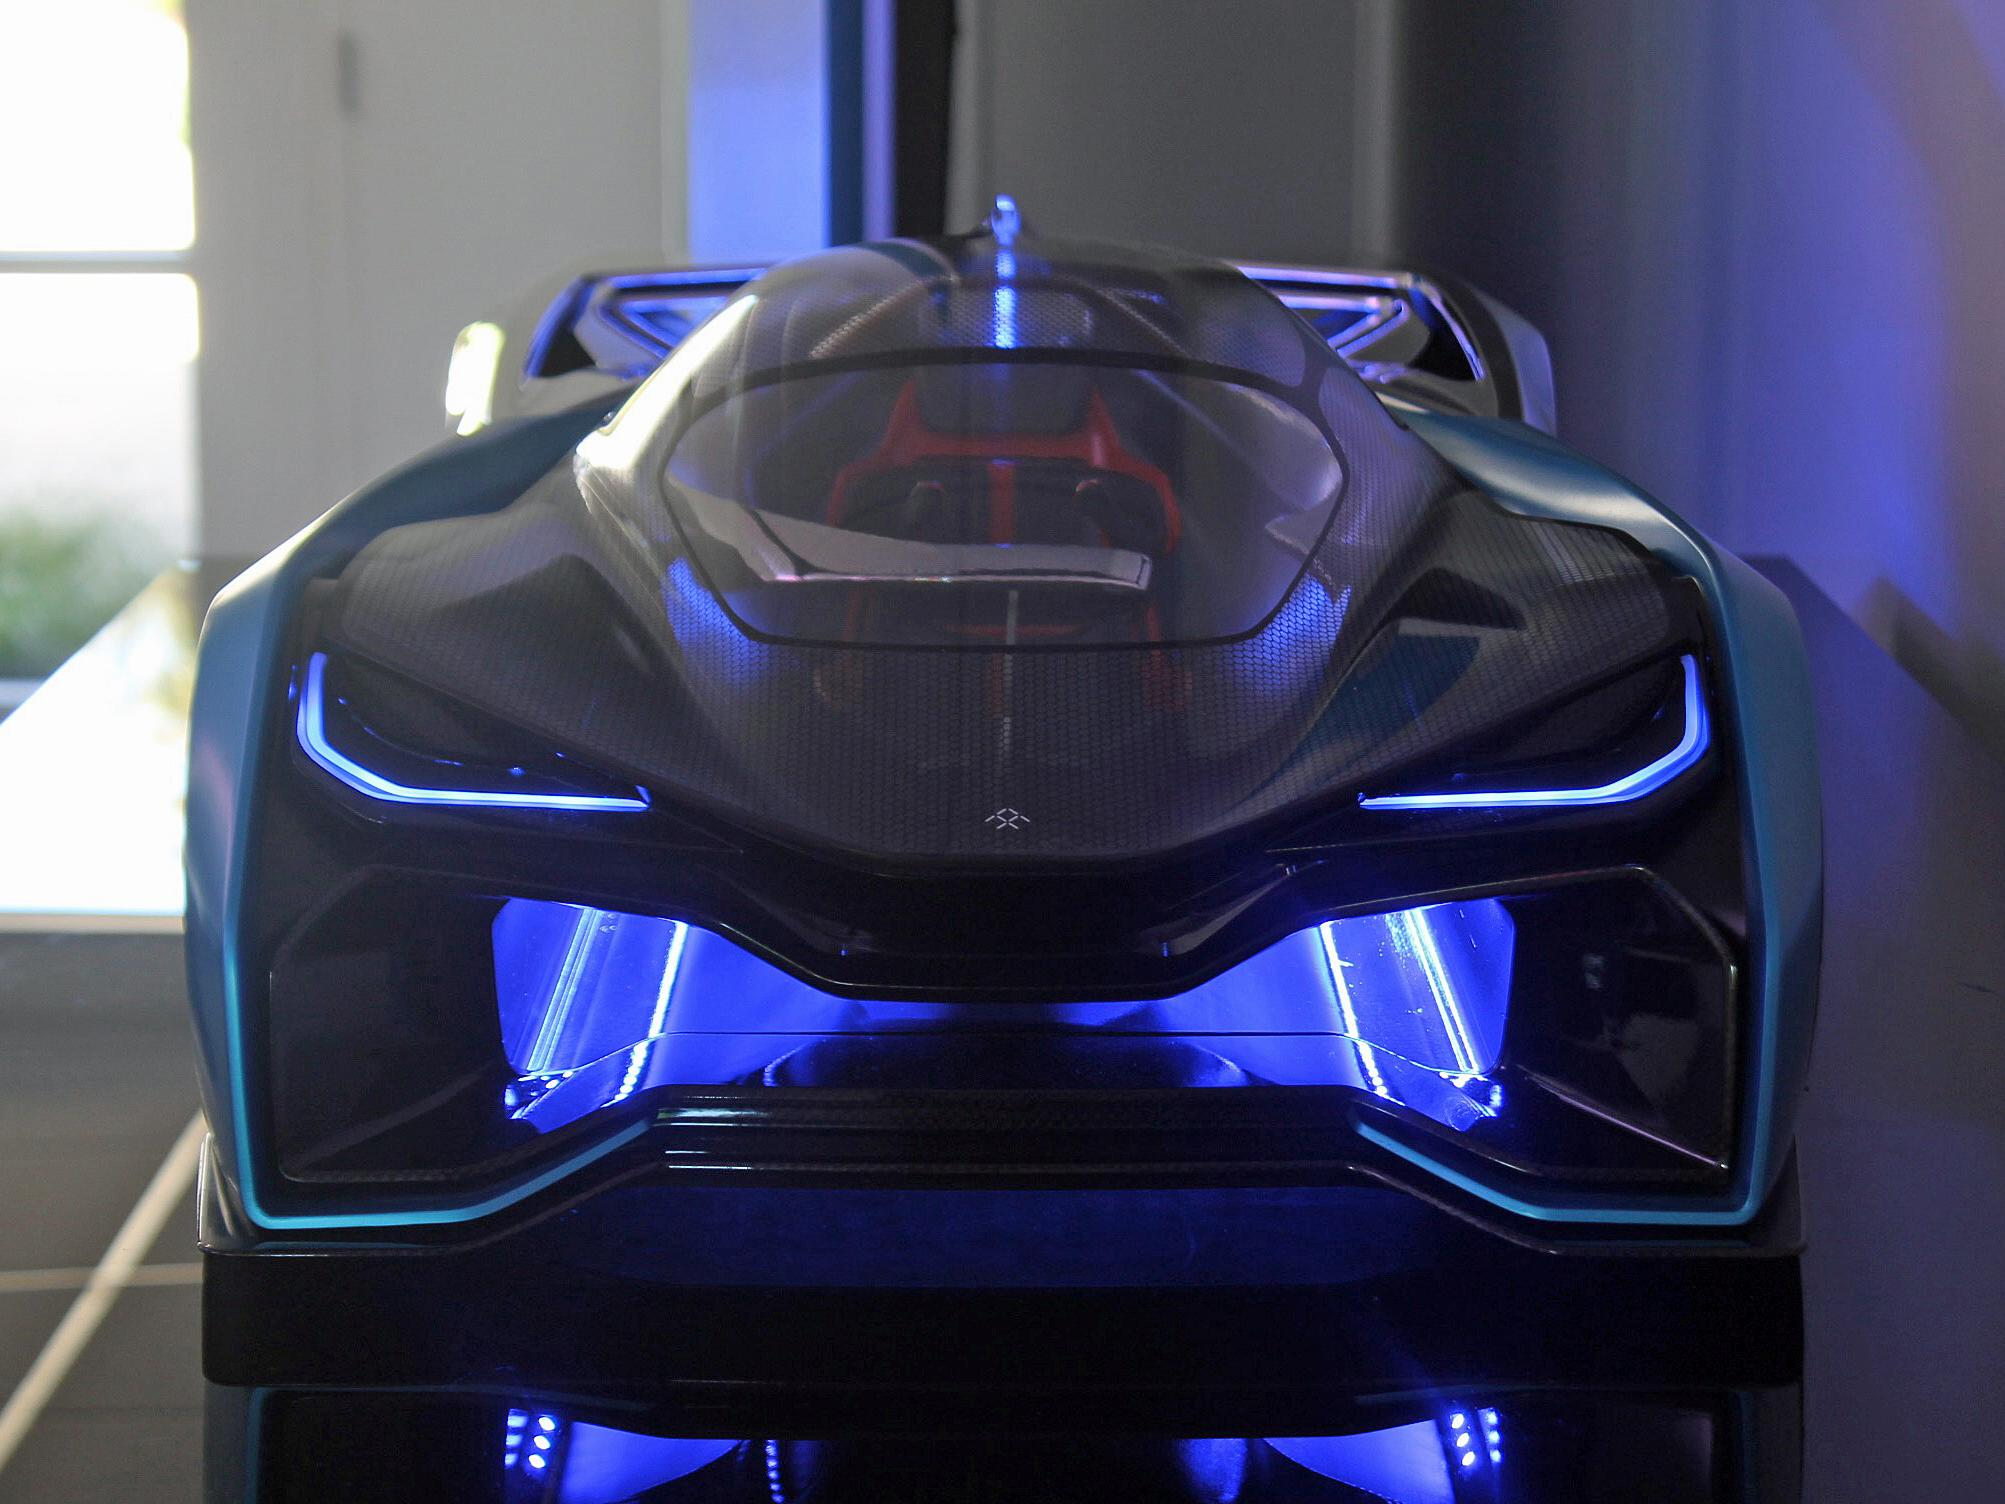 Electric-car startup Faraday Future is already in expansion mode